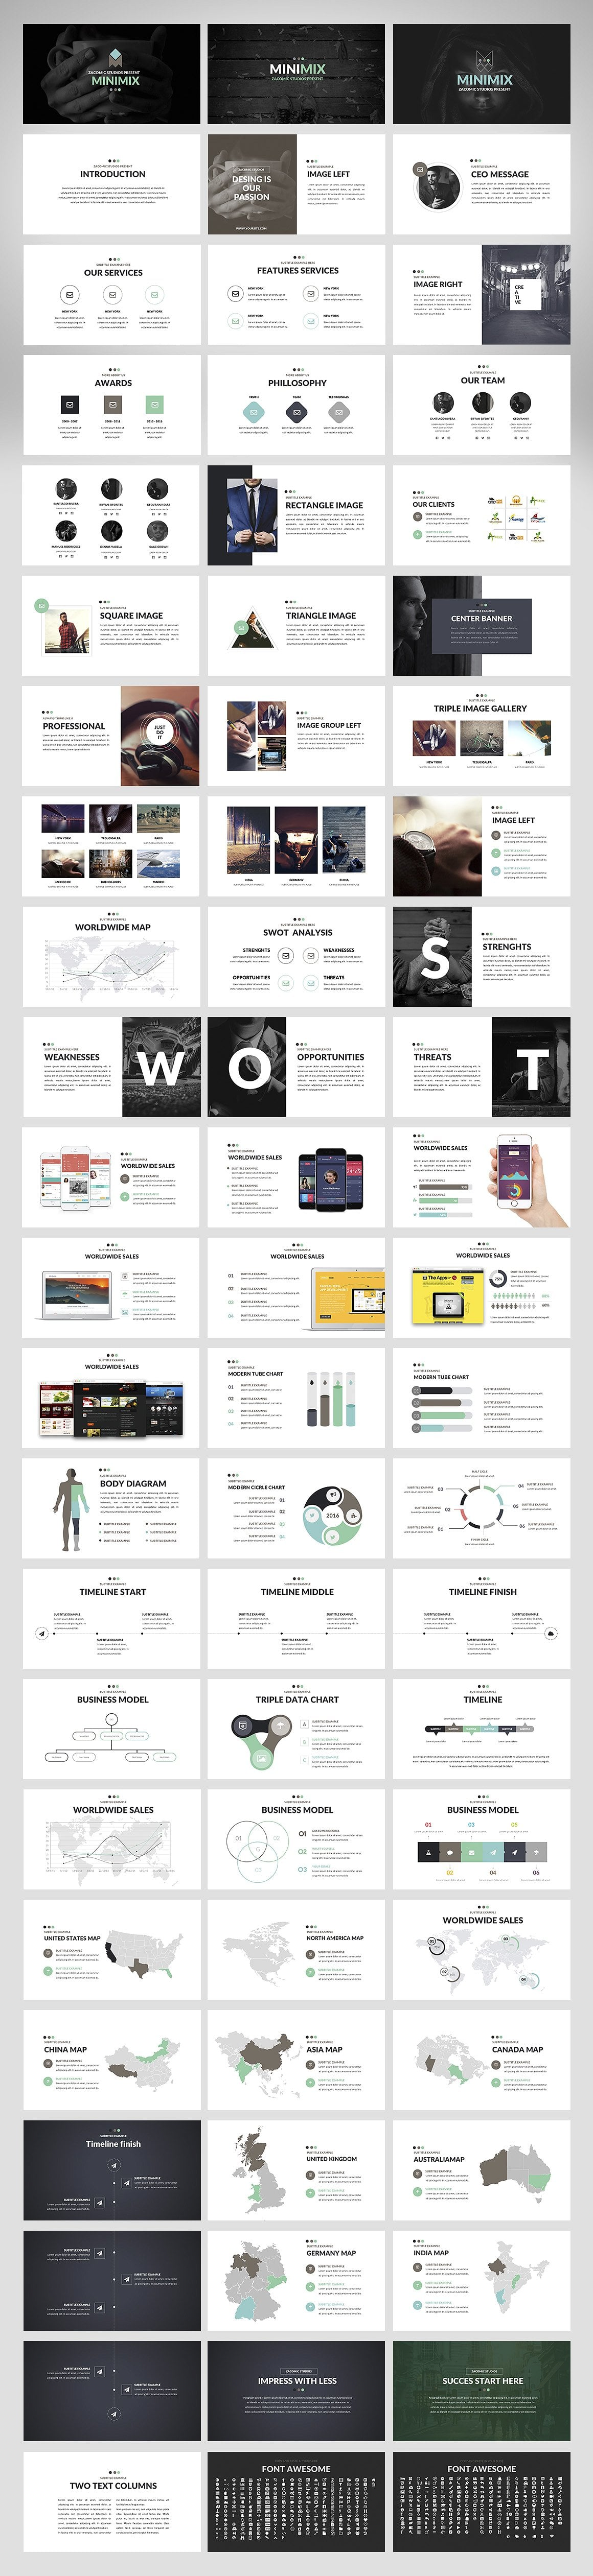 20 Powerpoint Templates with 81% OFF - Minimix 02